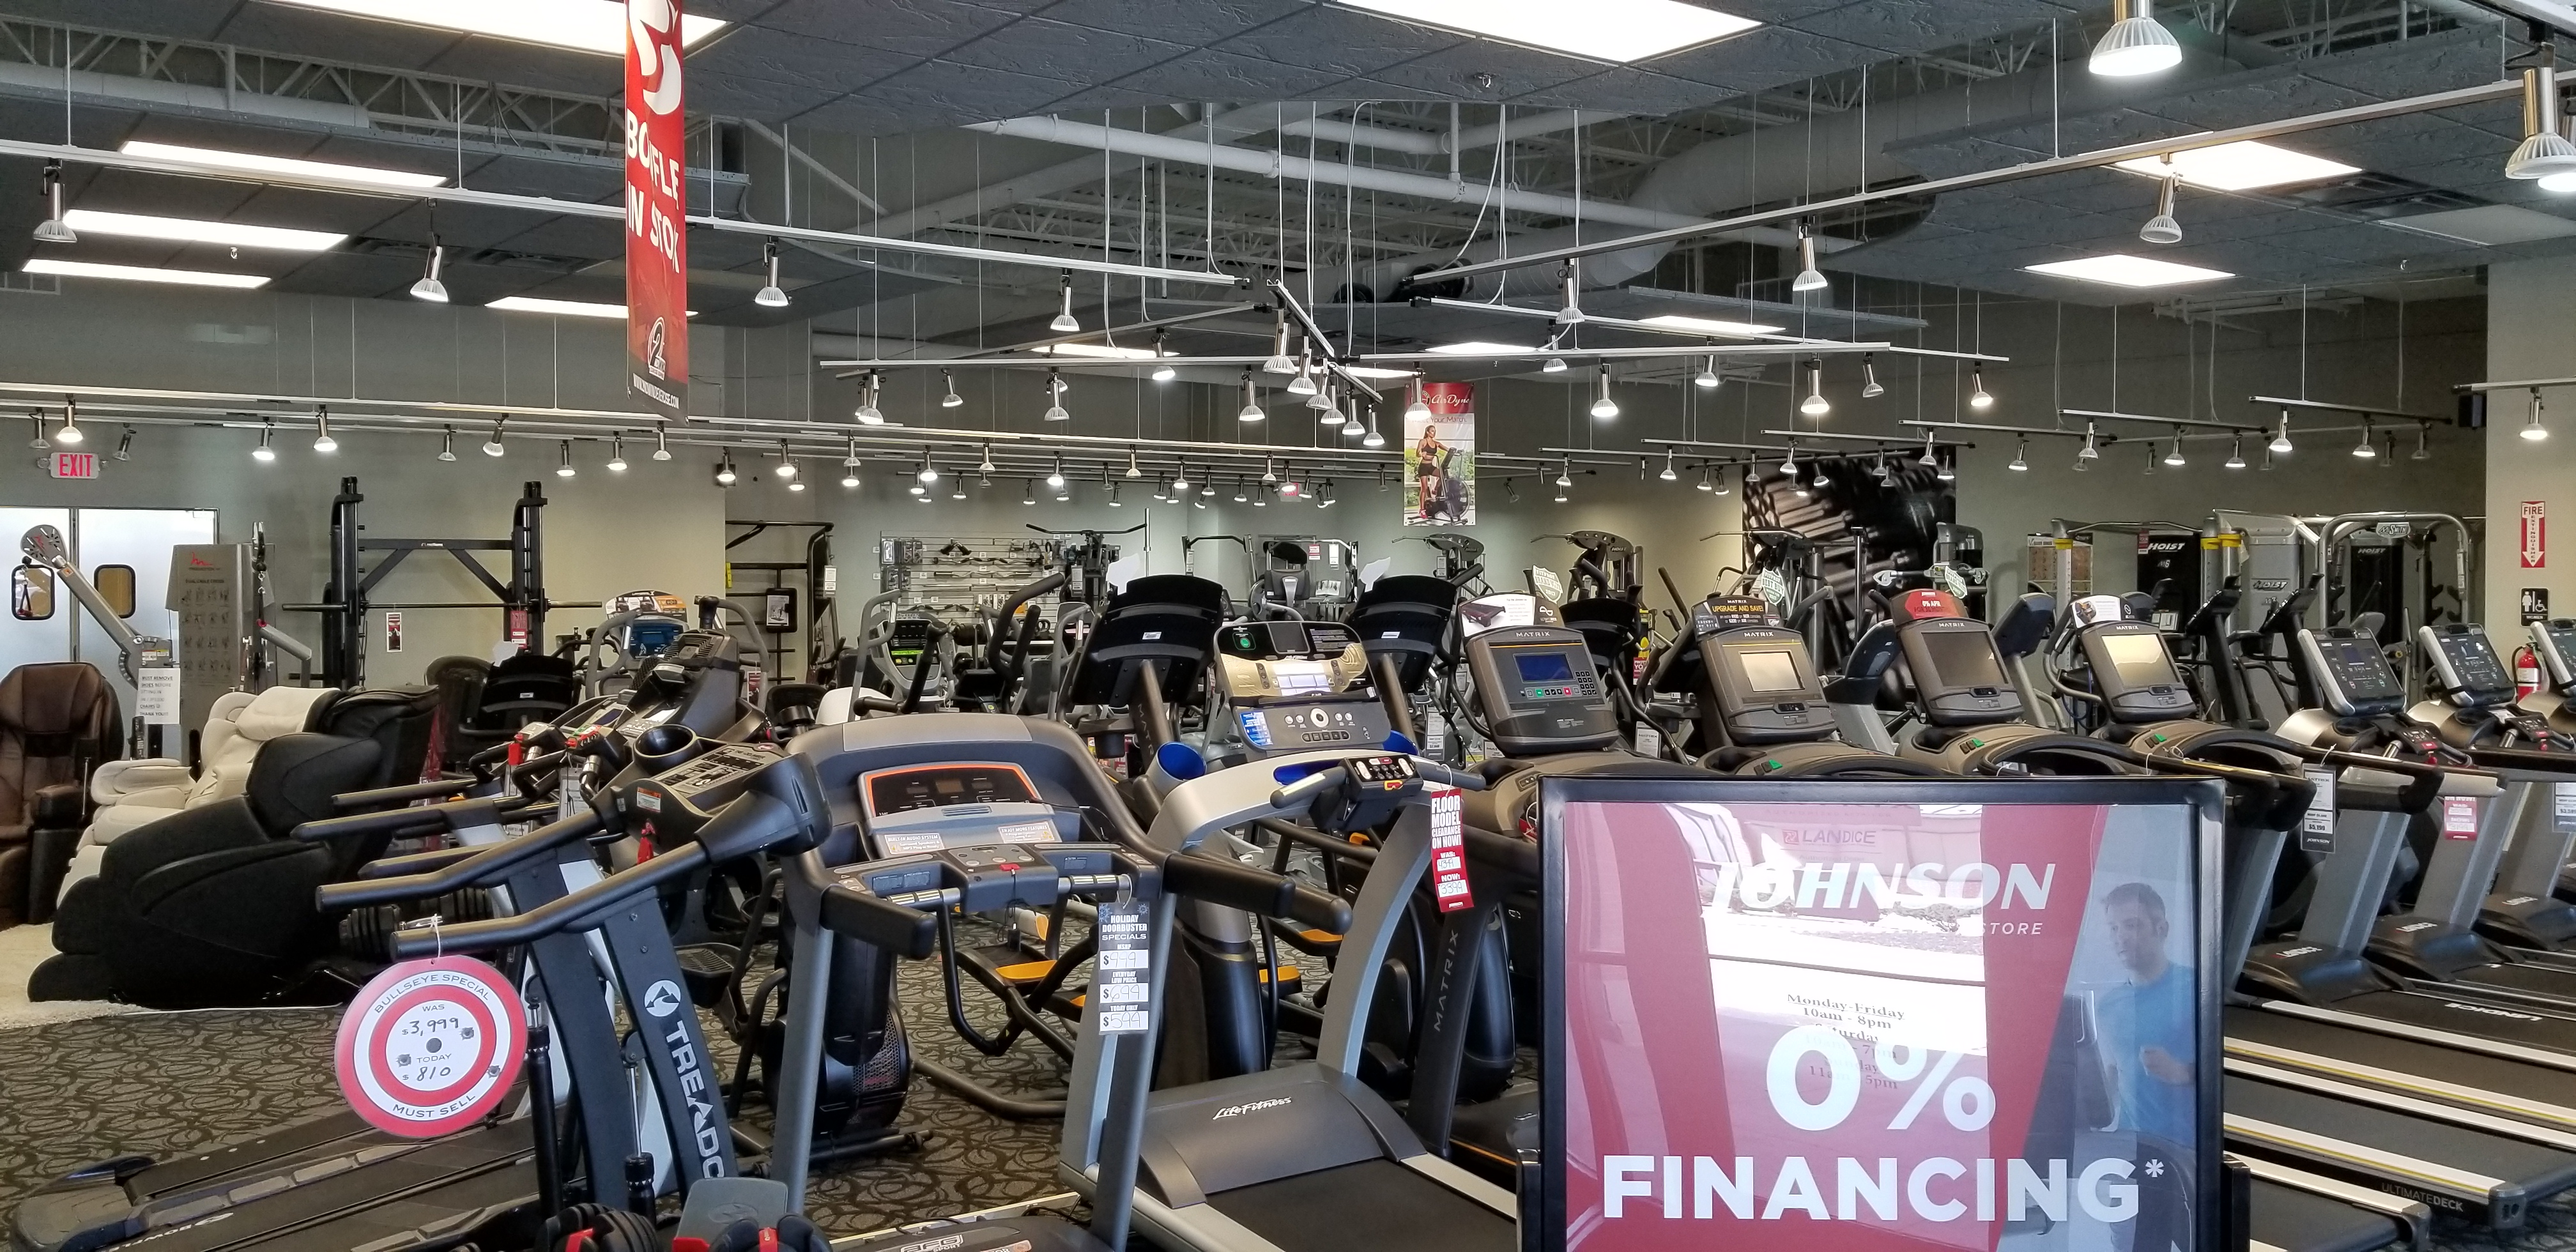 Johnson Fitness & Wellness - Columbia, MO